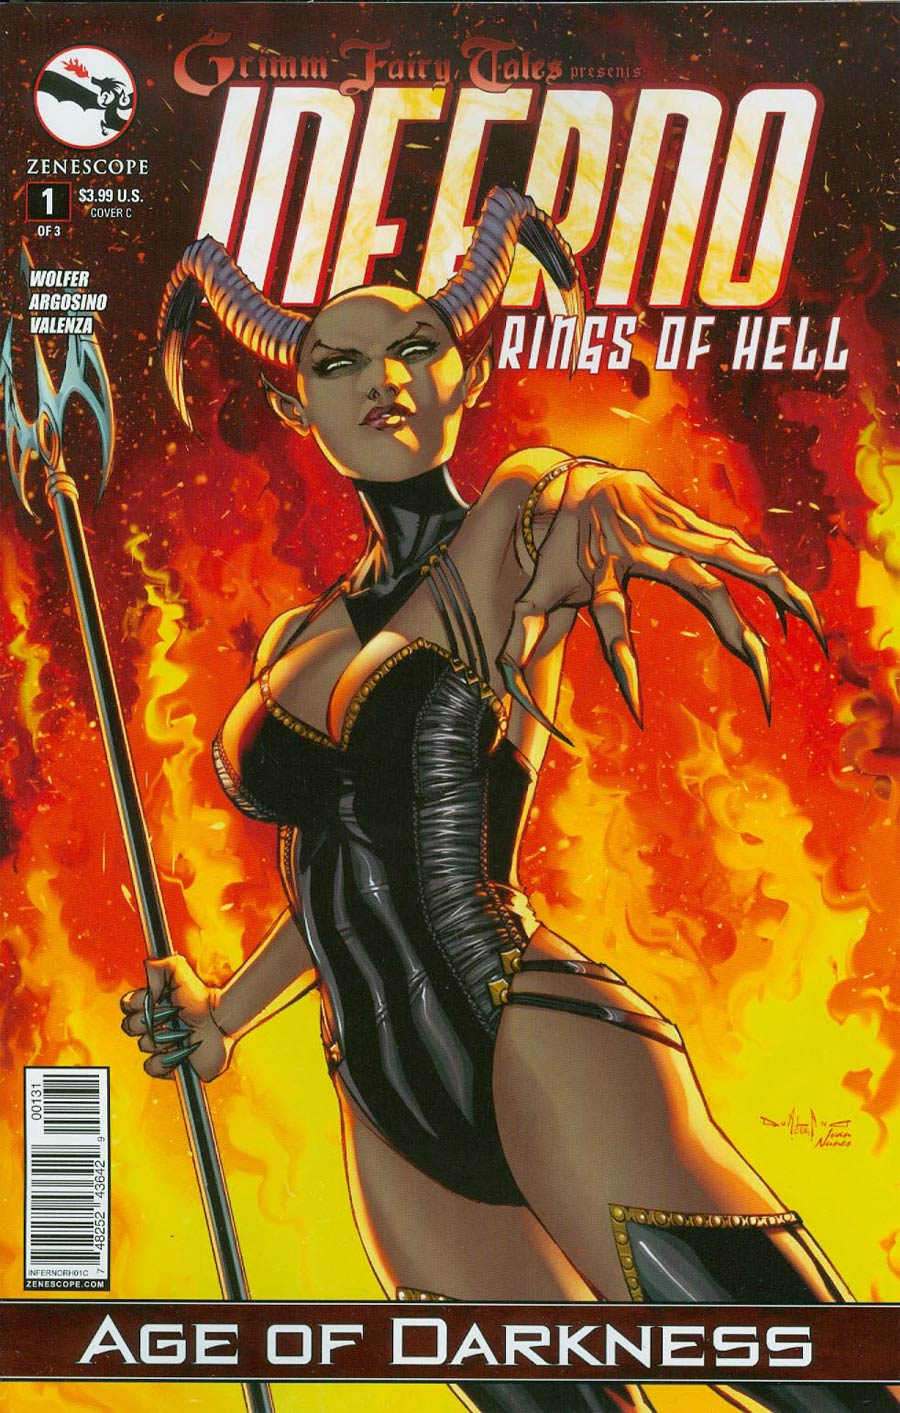 Grimm Fairy Tales Presents Inferno Rings Of Hell #1 Cover C Pasquale Qualano (Age Of Darkness Tie-In)